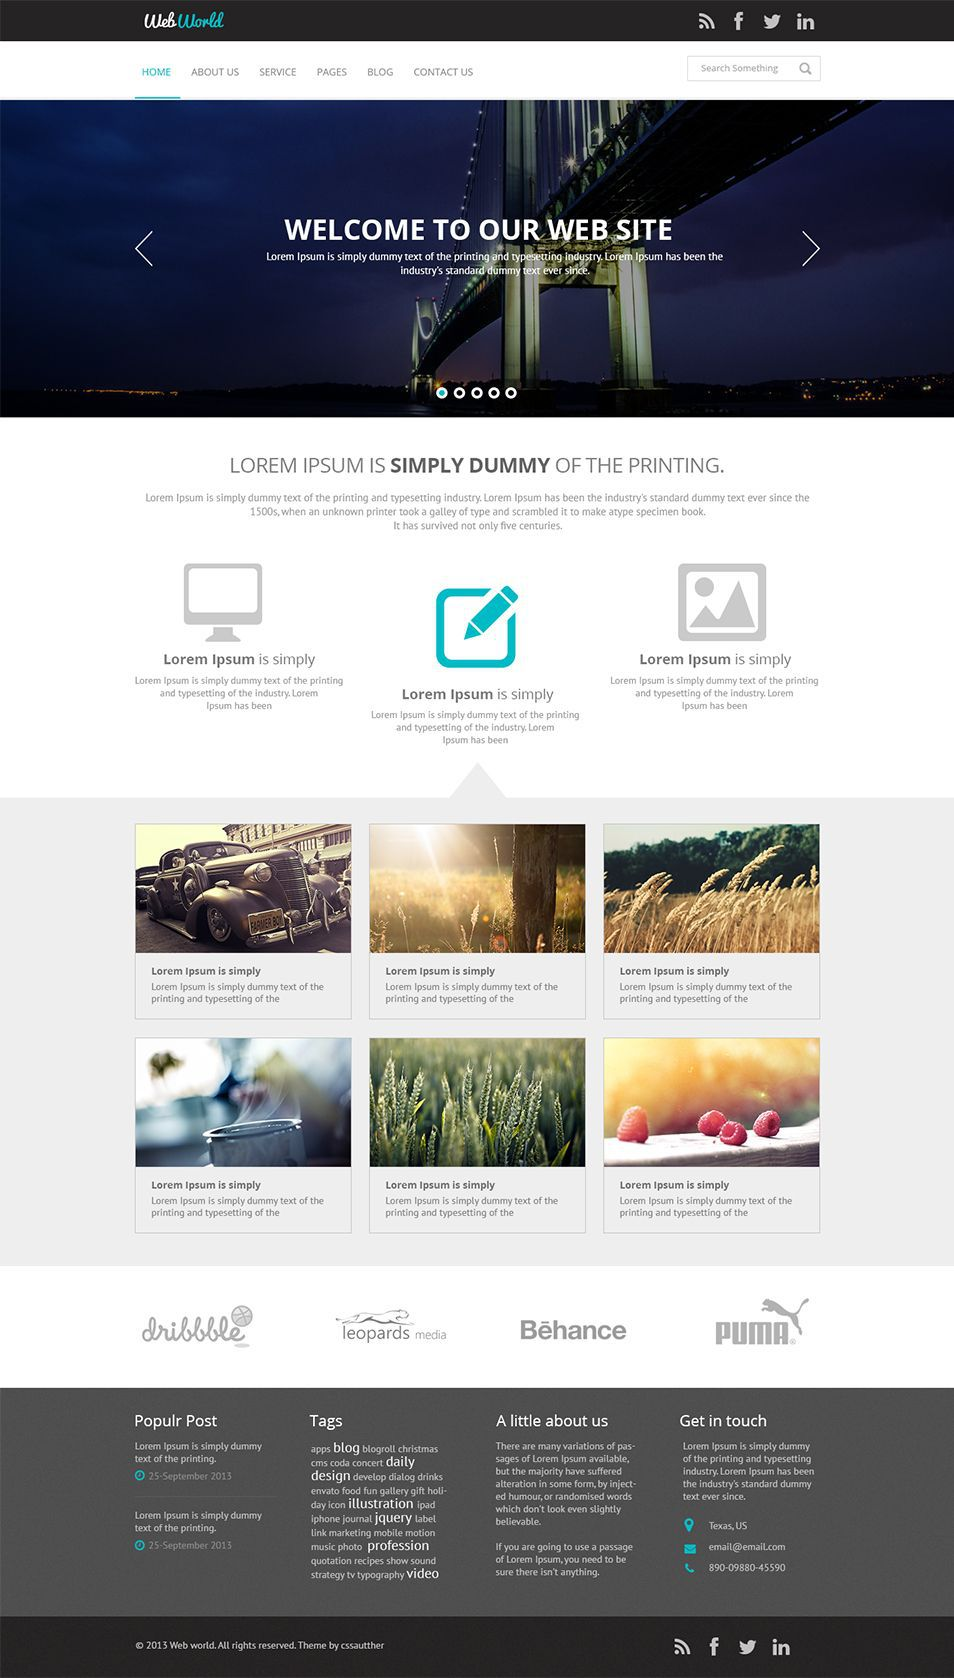 001 Unforgettable Free Professional Web Design Template Sample  Templates Website DownloadFull